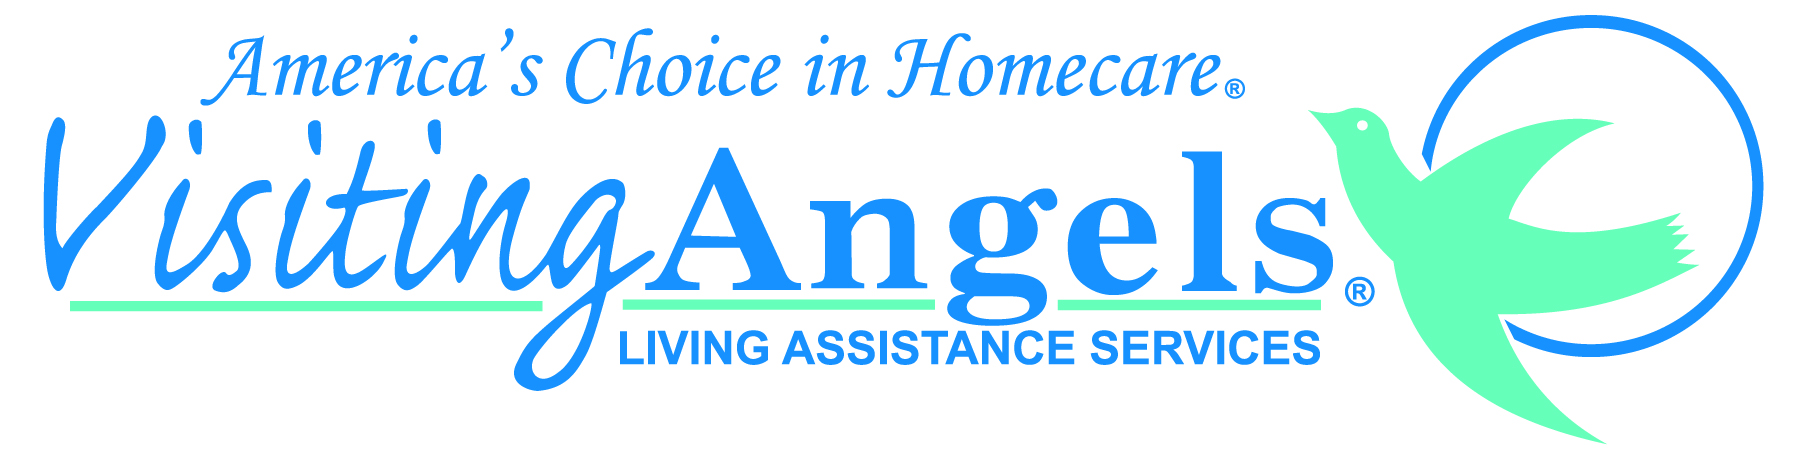 Visiting Angel Logo